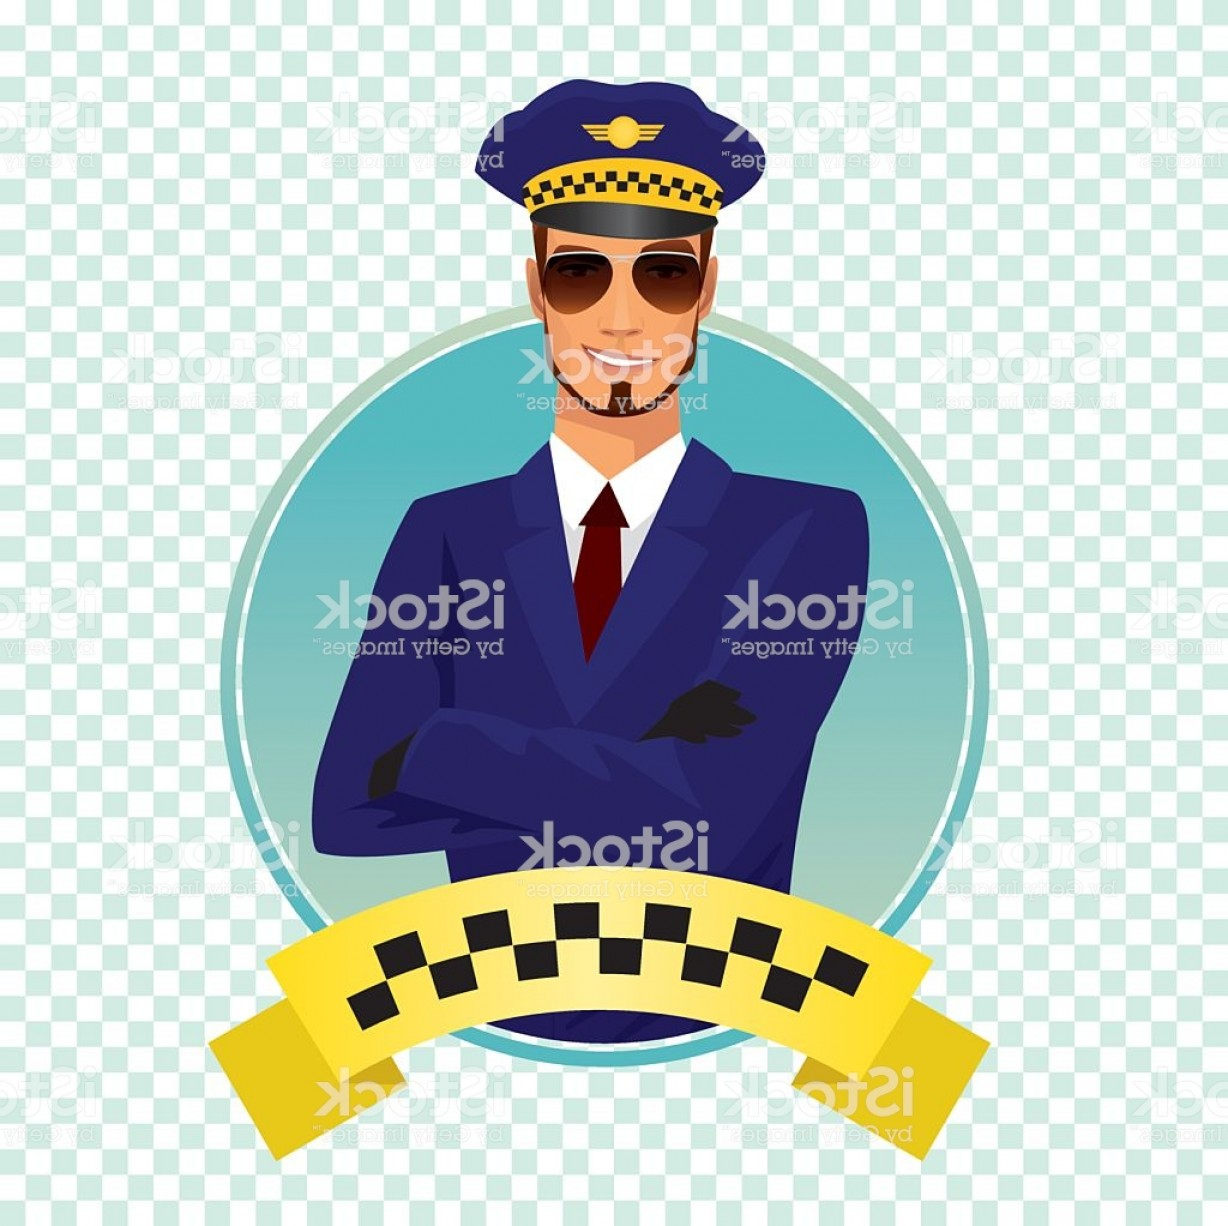 Chauffer Driver Cap Vector: Round Icon With Stylish Shaving Taxi Driver Gm